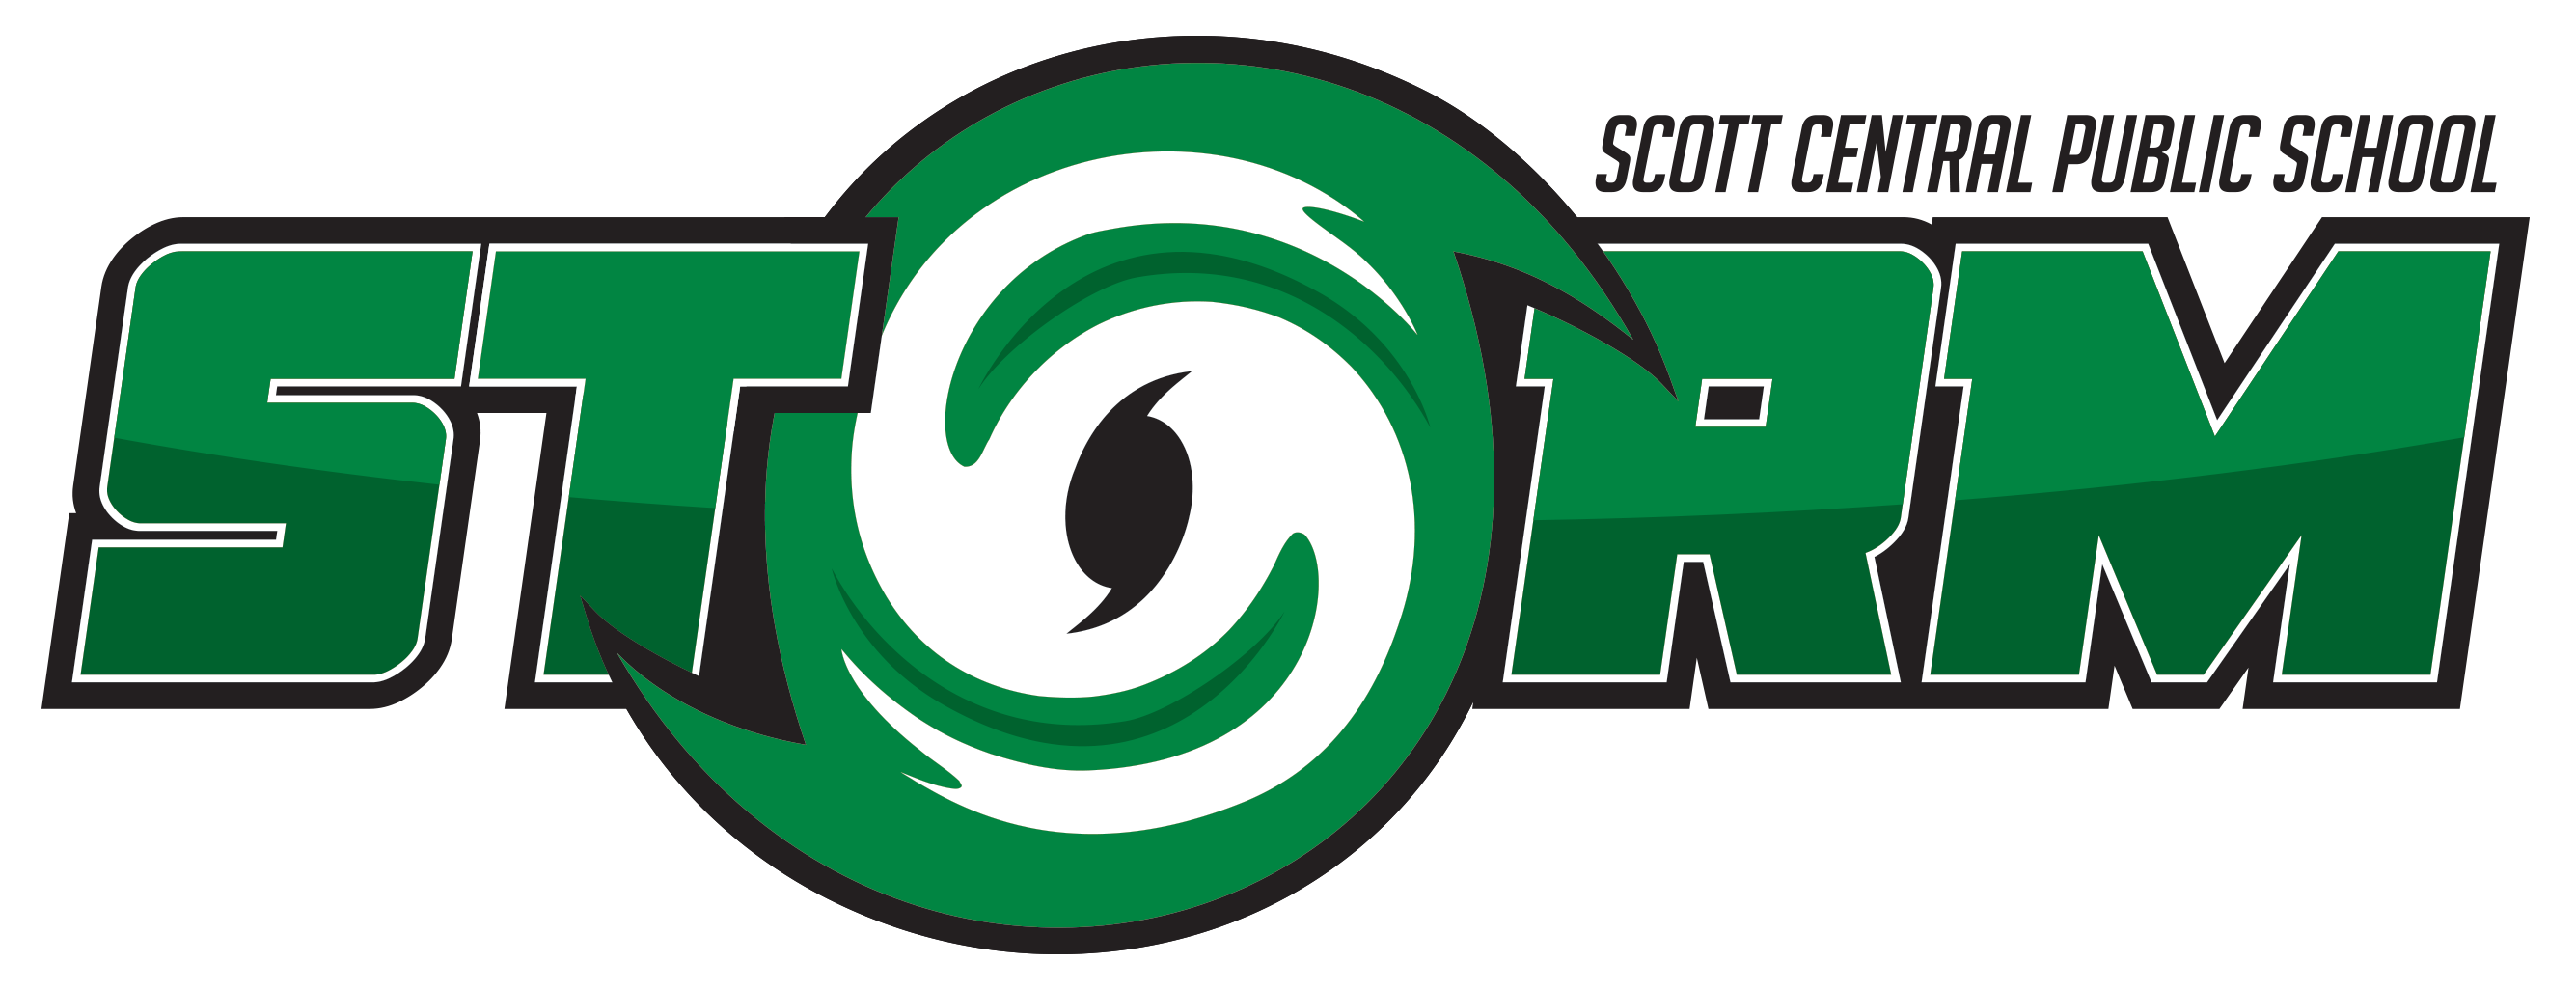 Scott Central Public School logo